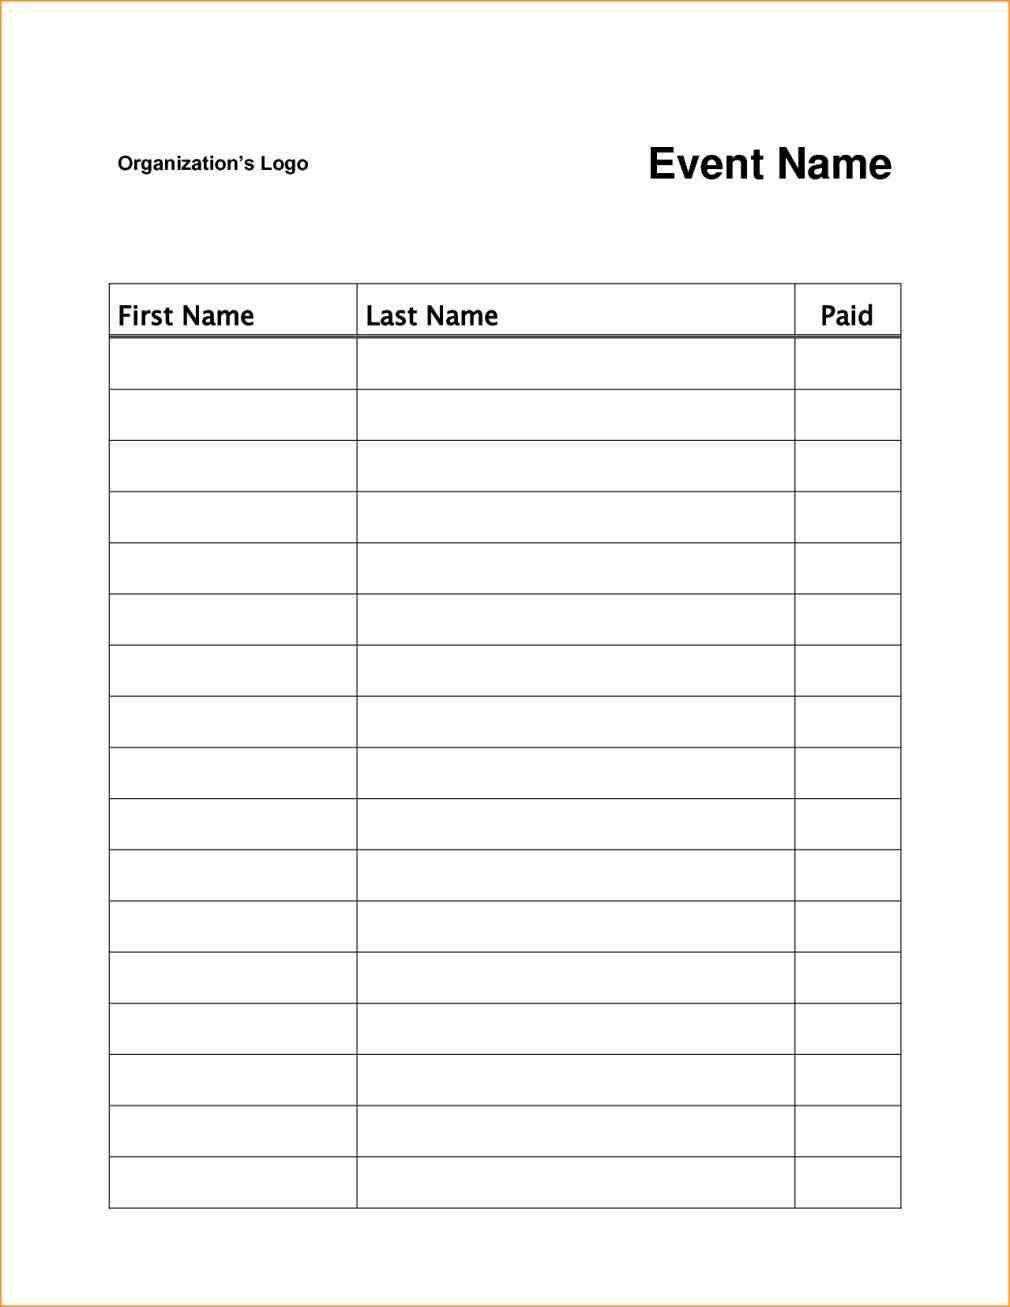 Event Or Class Workshop Forms A Sign Up Sheet Template Word Simple - Free Printable Sign Up Sheet